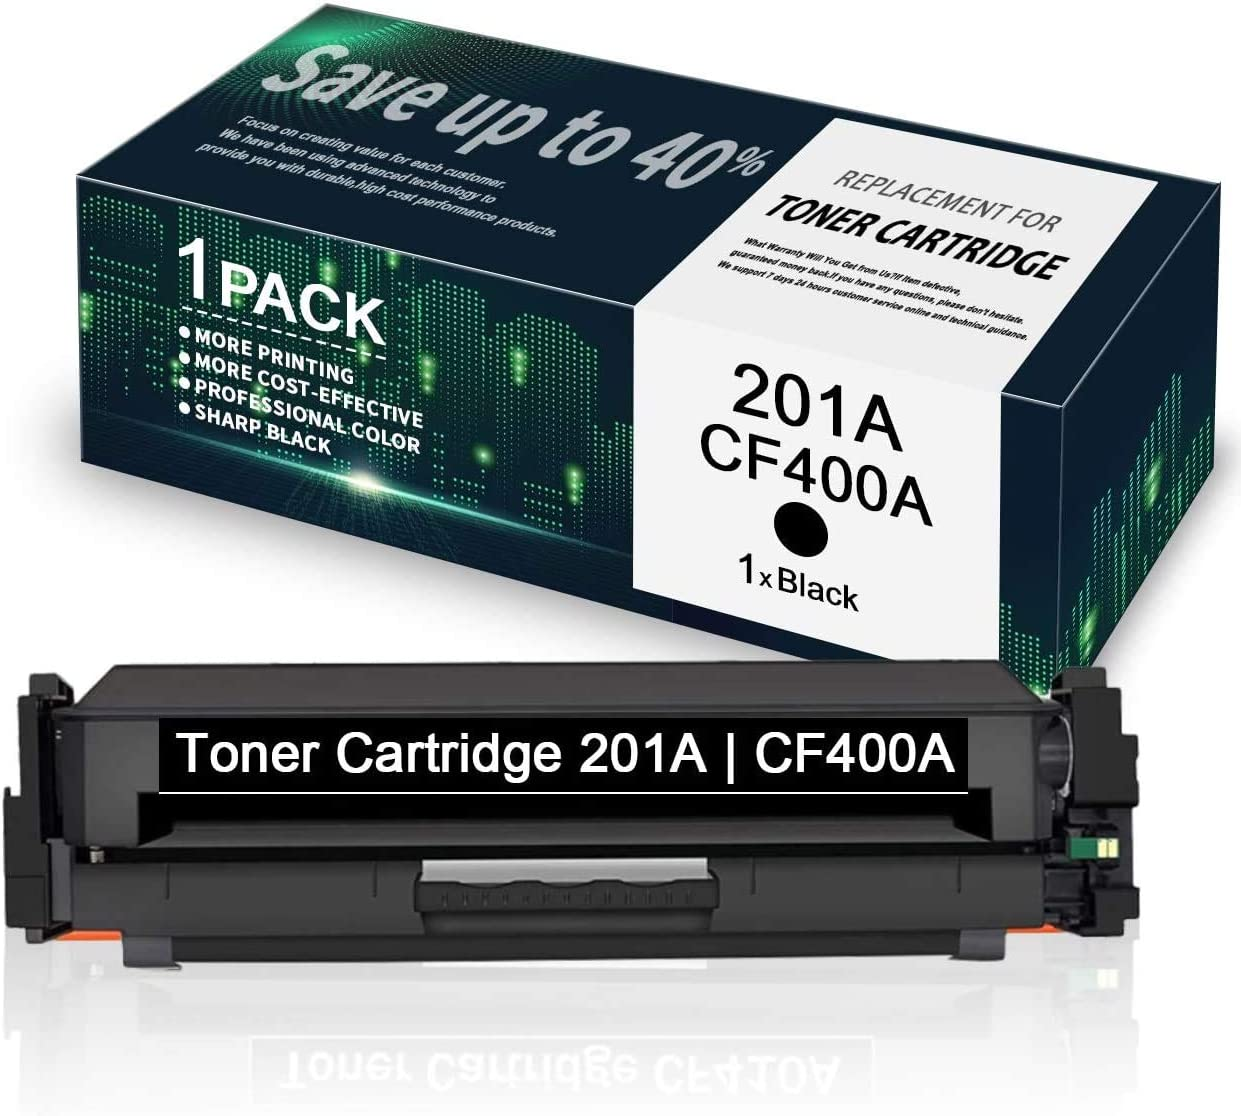 201A   CF400A Black Toner Cartridge Replacement for HP Color Laserjet Pro MFP M277n M277dw M277c6 M274n Pro M252dw M252n - by VaserInk